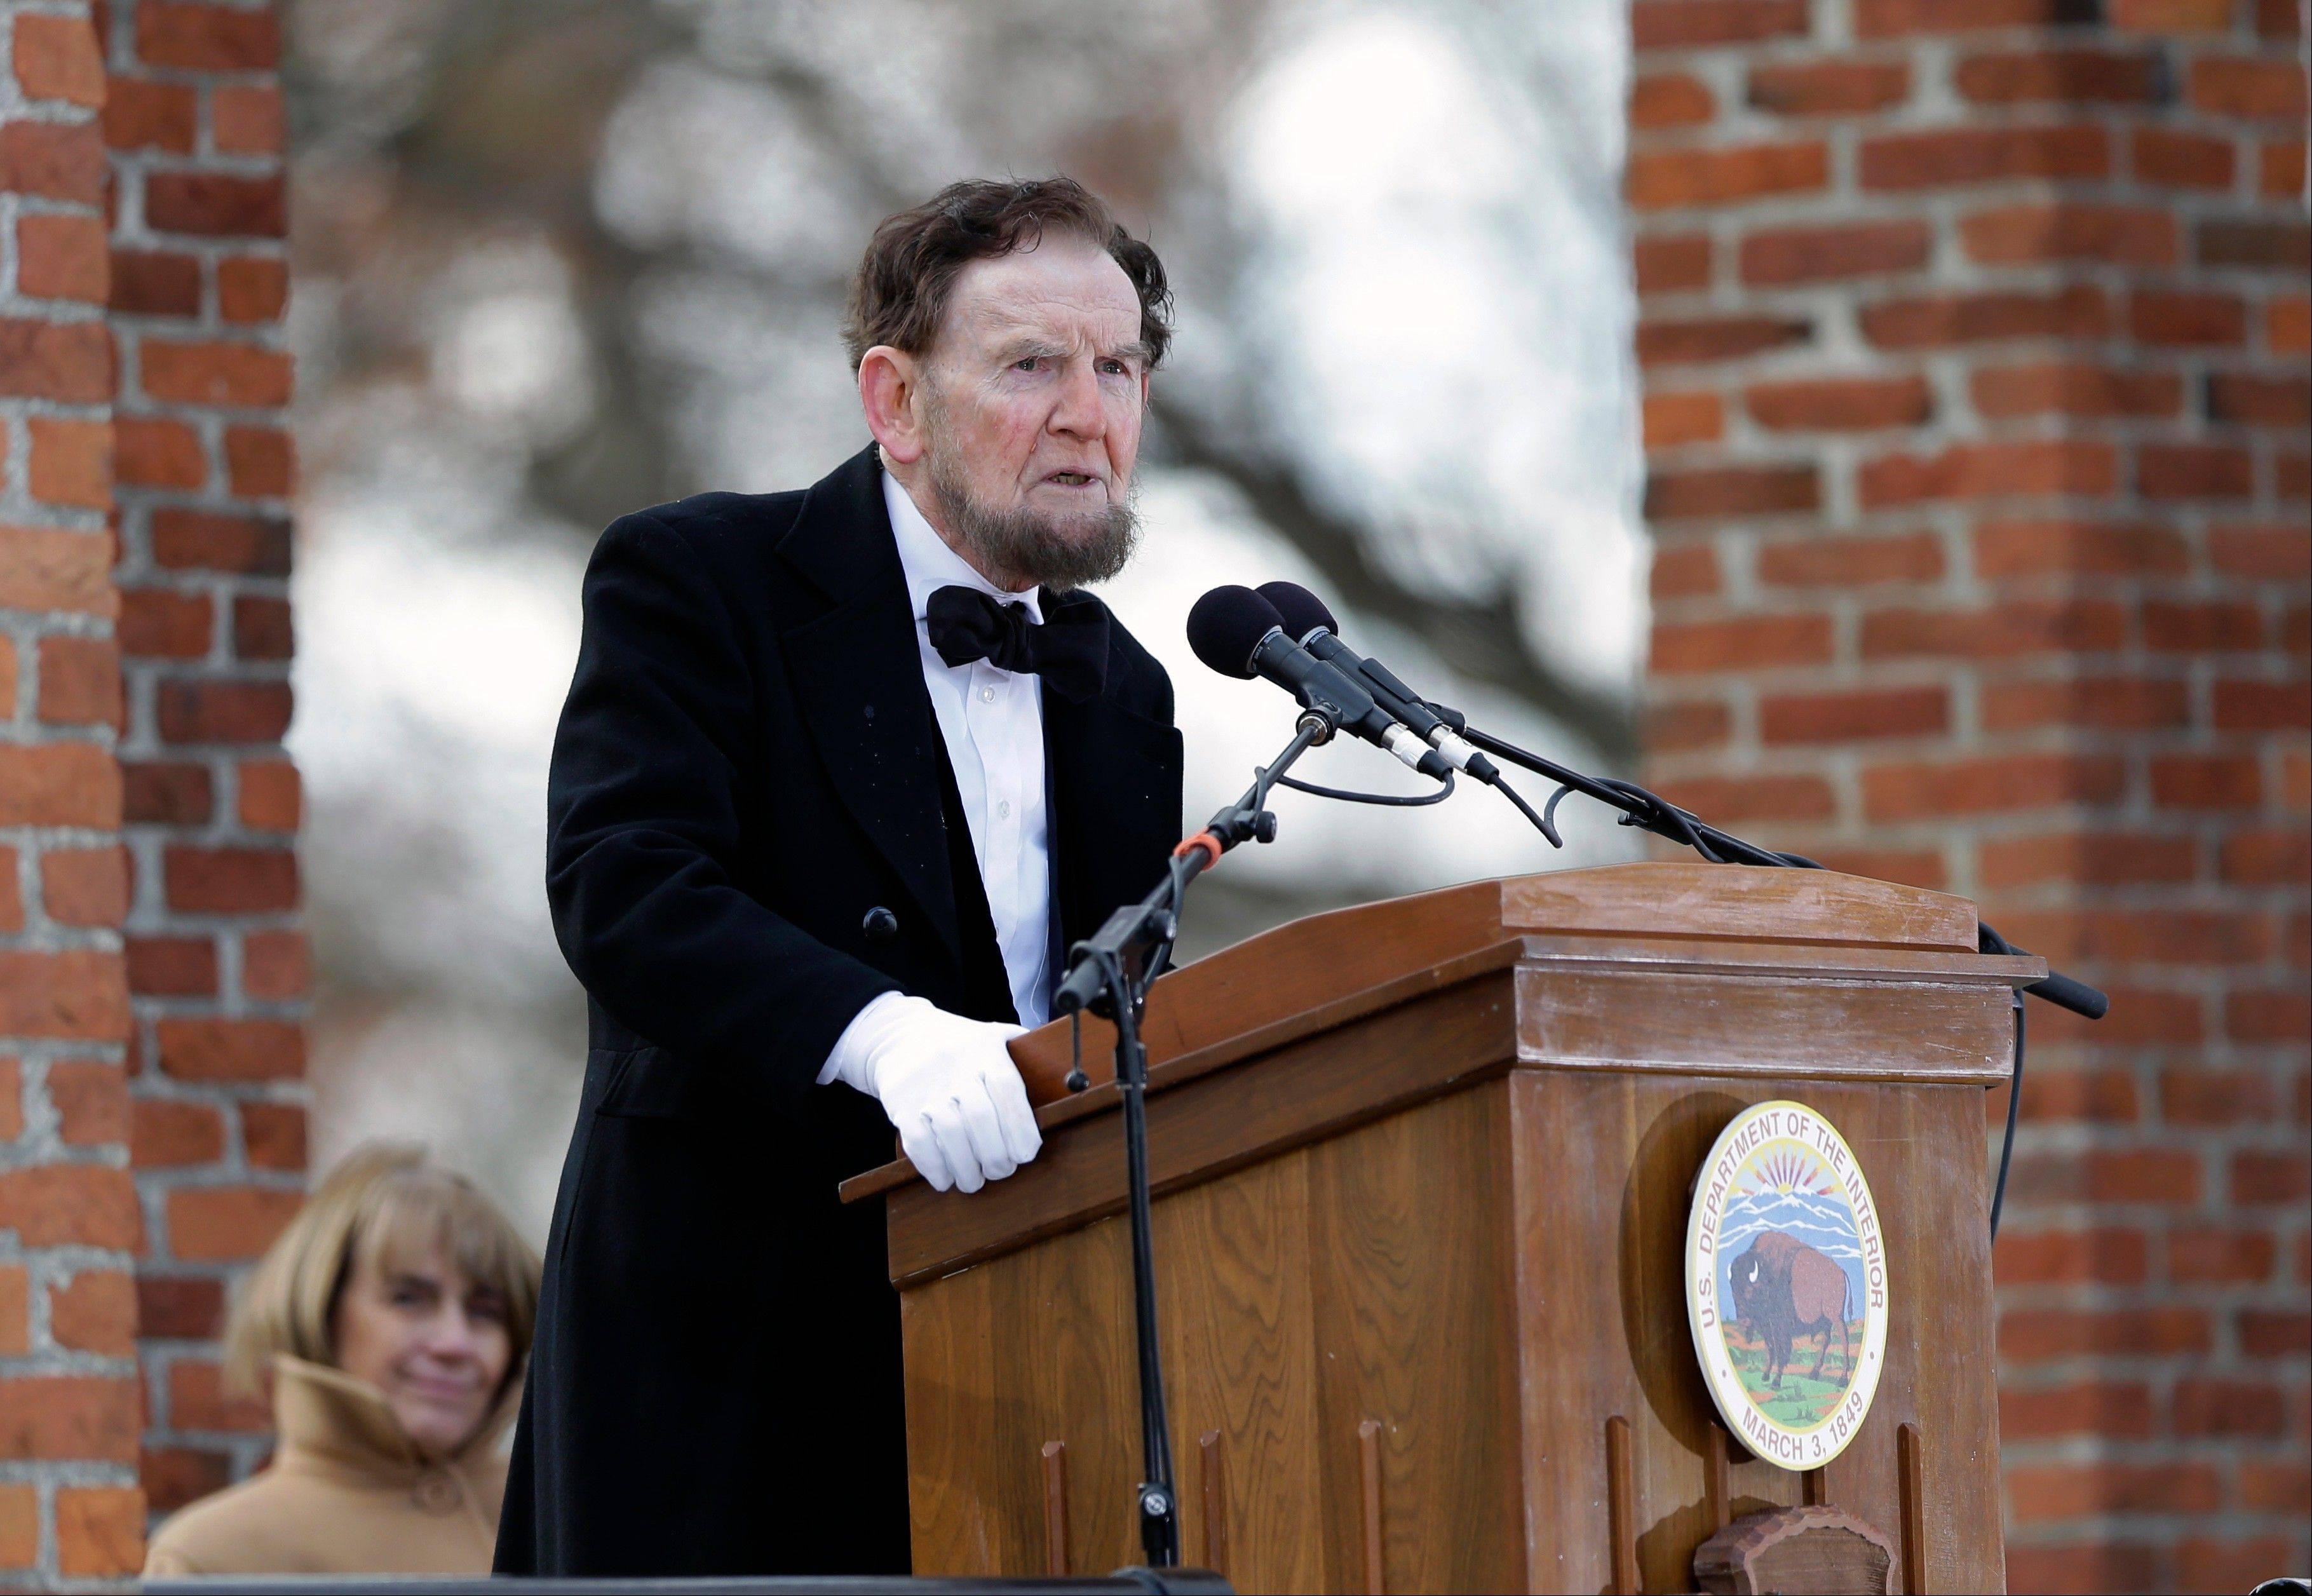 James Getty, portraying President Abraham Lincoln, recites the Gettysburg Address during a ceremony commemorating the 150th anniversary of the historic speech, Tuesday Nov. 19, 2013. Lincoln's speech was first delivered in Gettysburg, Pa., nearly five months after the major battle that left tens of thousands of men wounded, dead or missing.